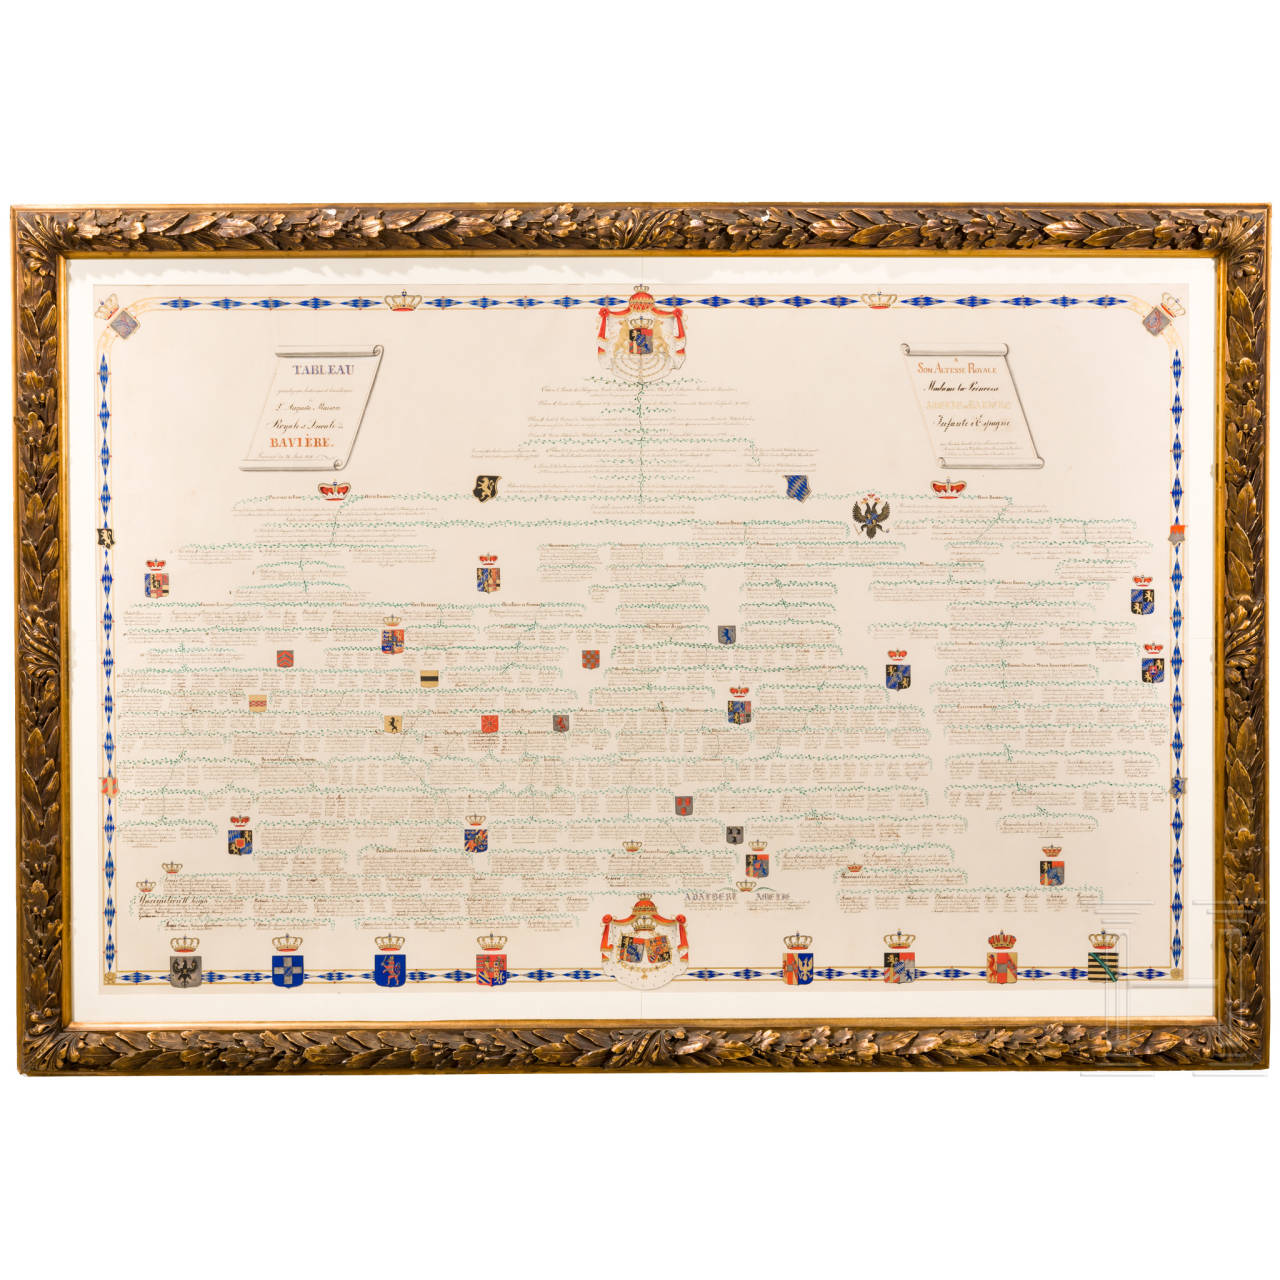 A large-size calligraphic family tree for the wedding of Prince Adalbert of Bavaria on 25 August 1856